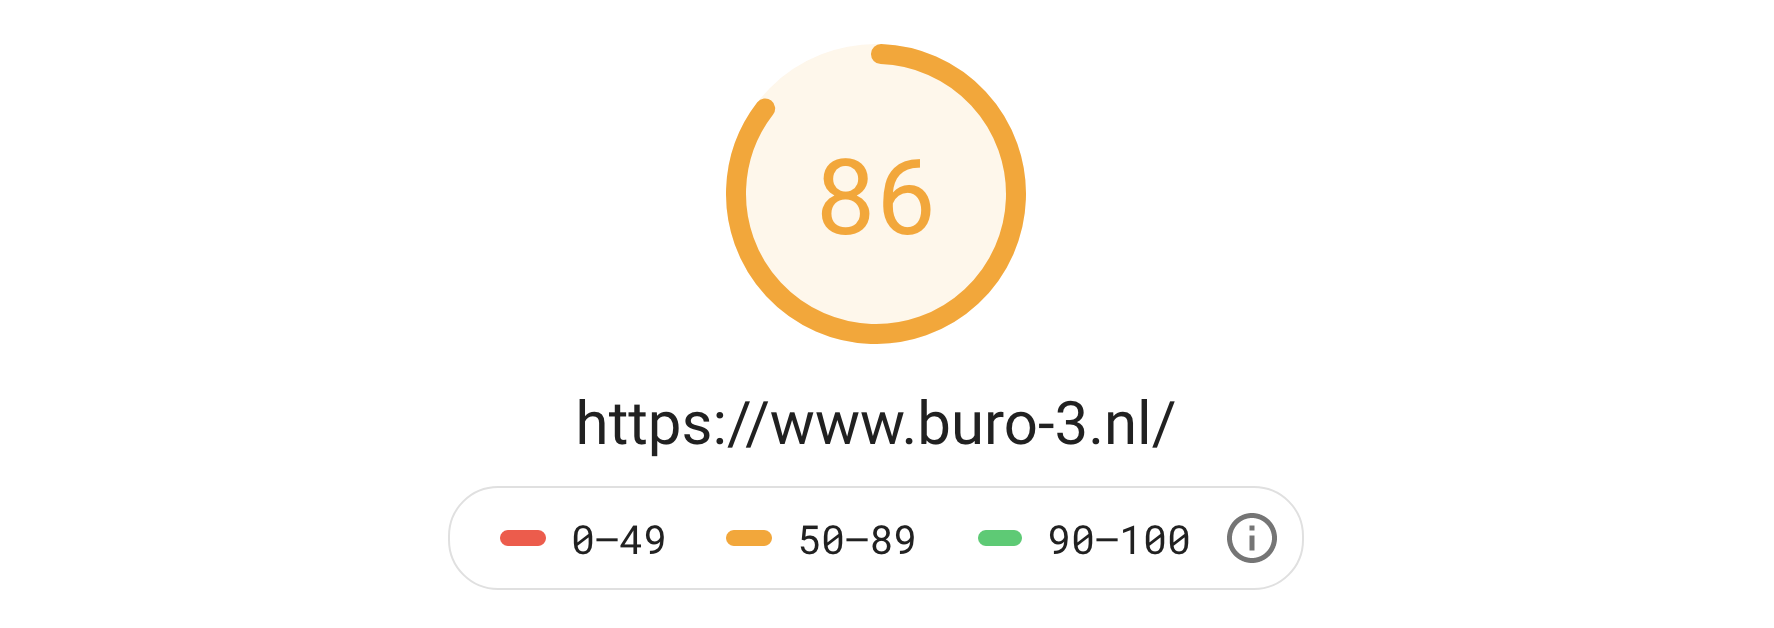 Website score Buro 3 uit Google page speed insights